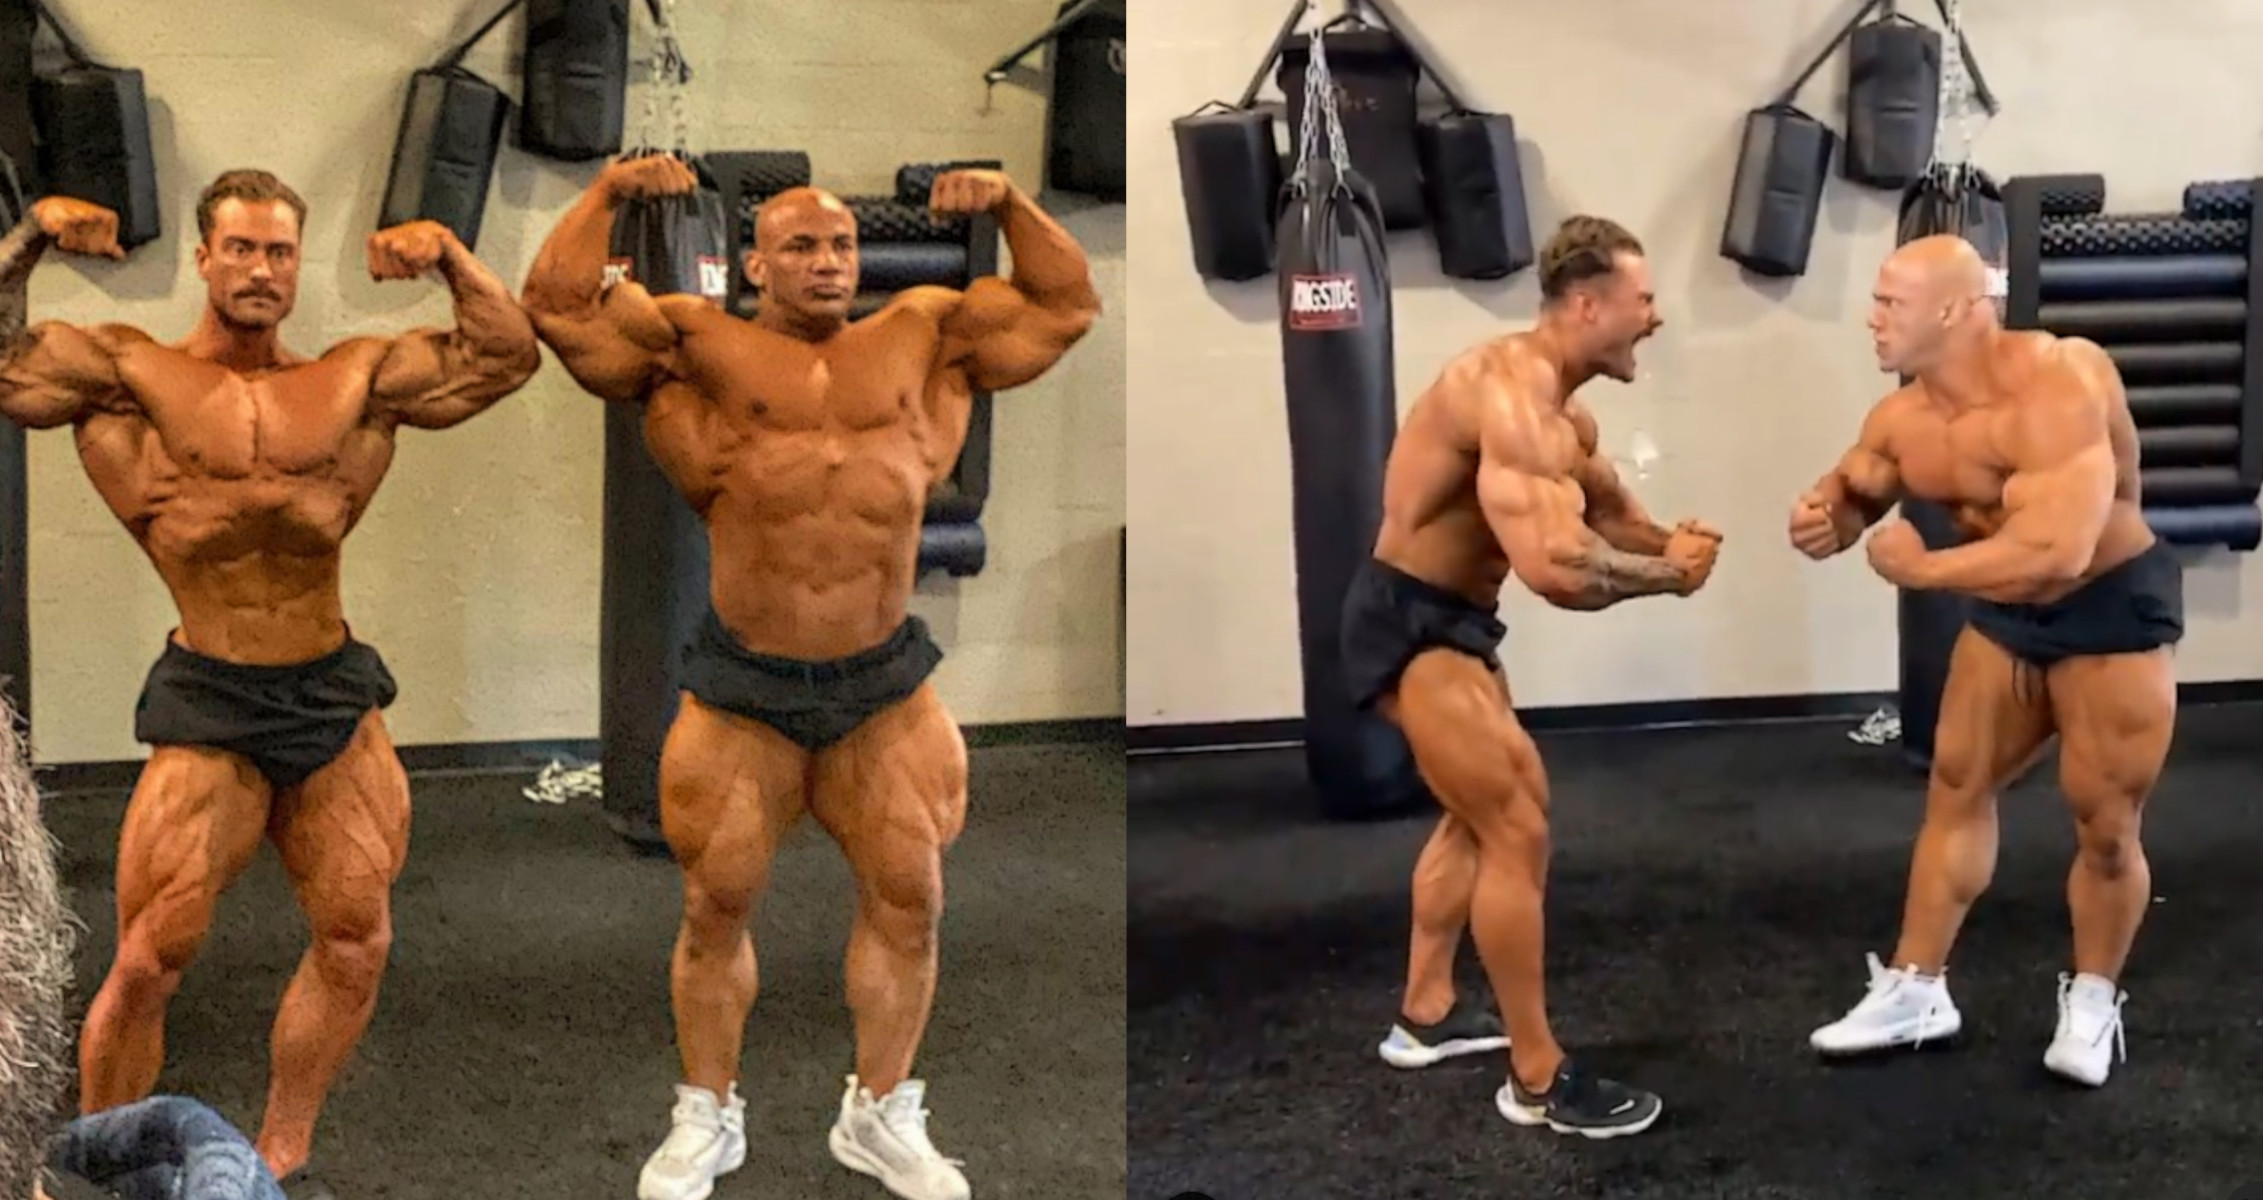 2020 Olympia Champions Big Ramy and Chris Bumstead Have a Posedown